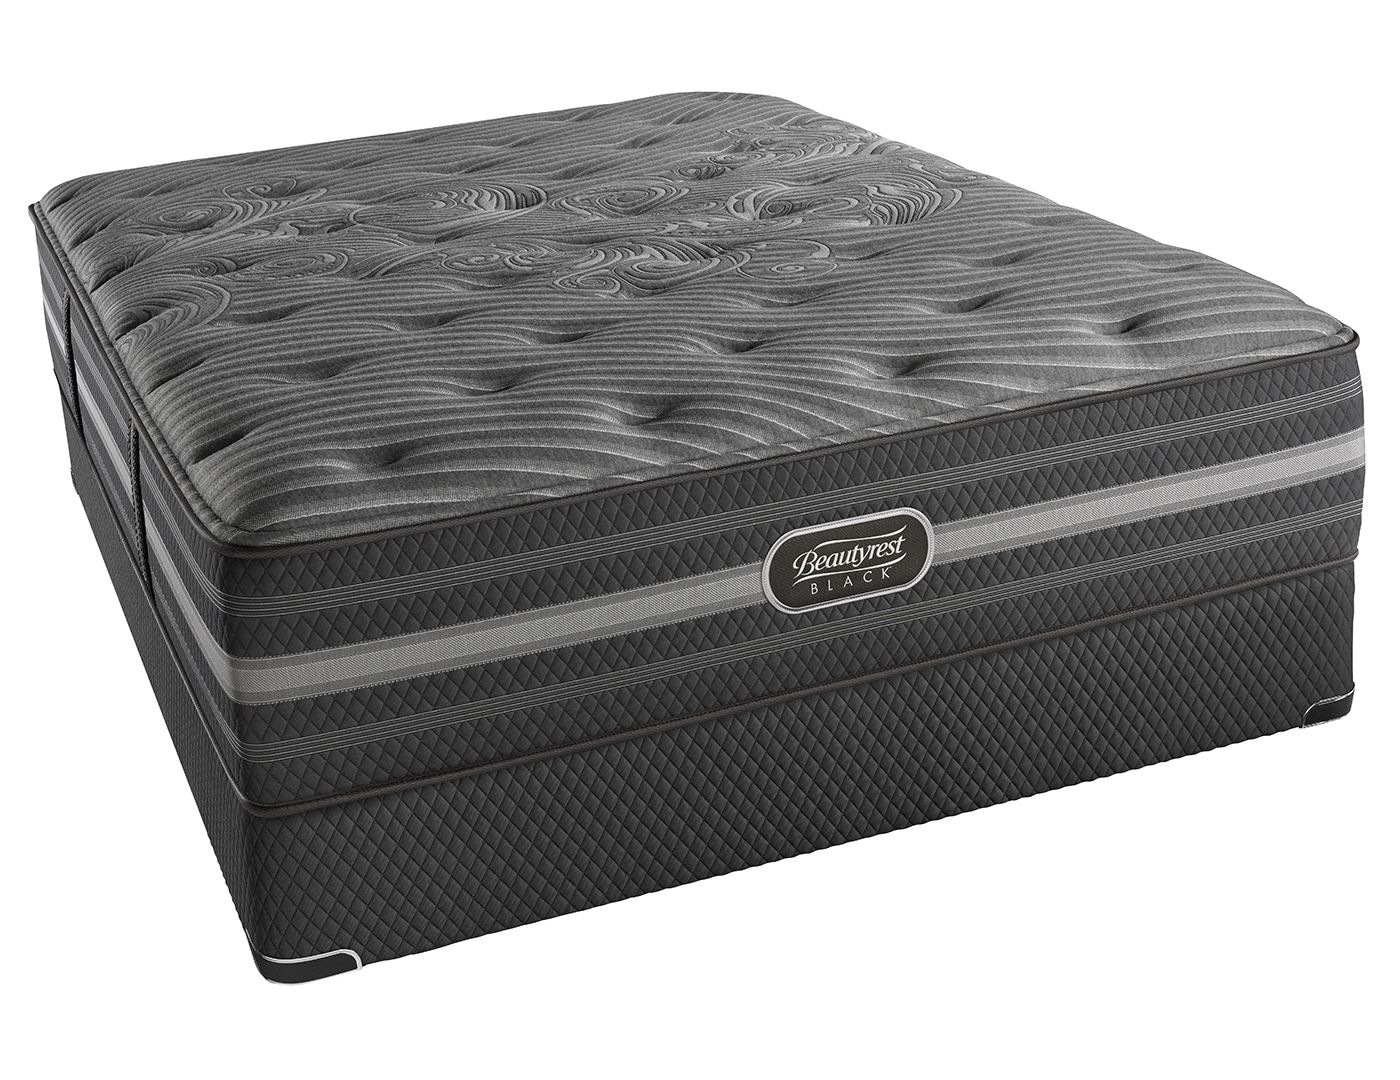 beautyrest black mariela luxury firm king mattress mattress